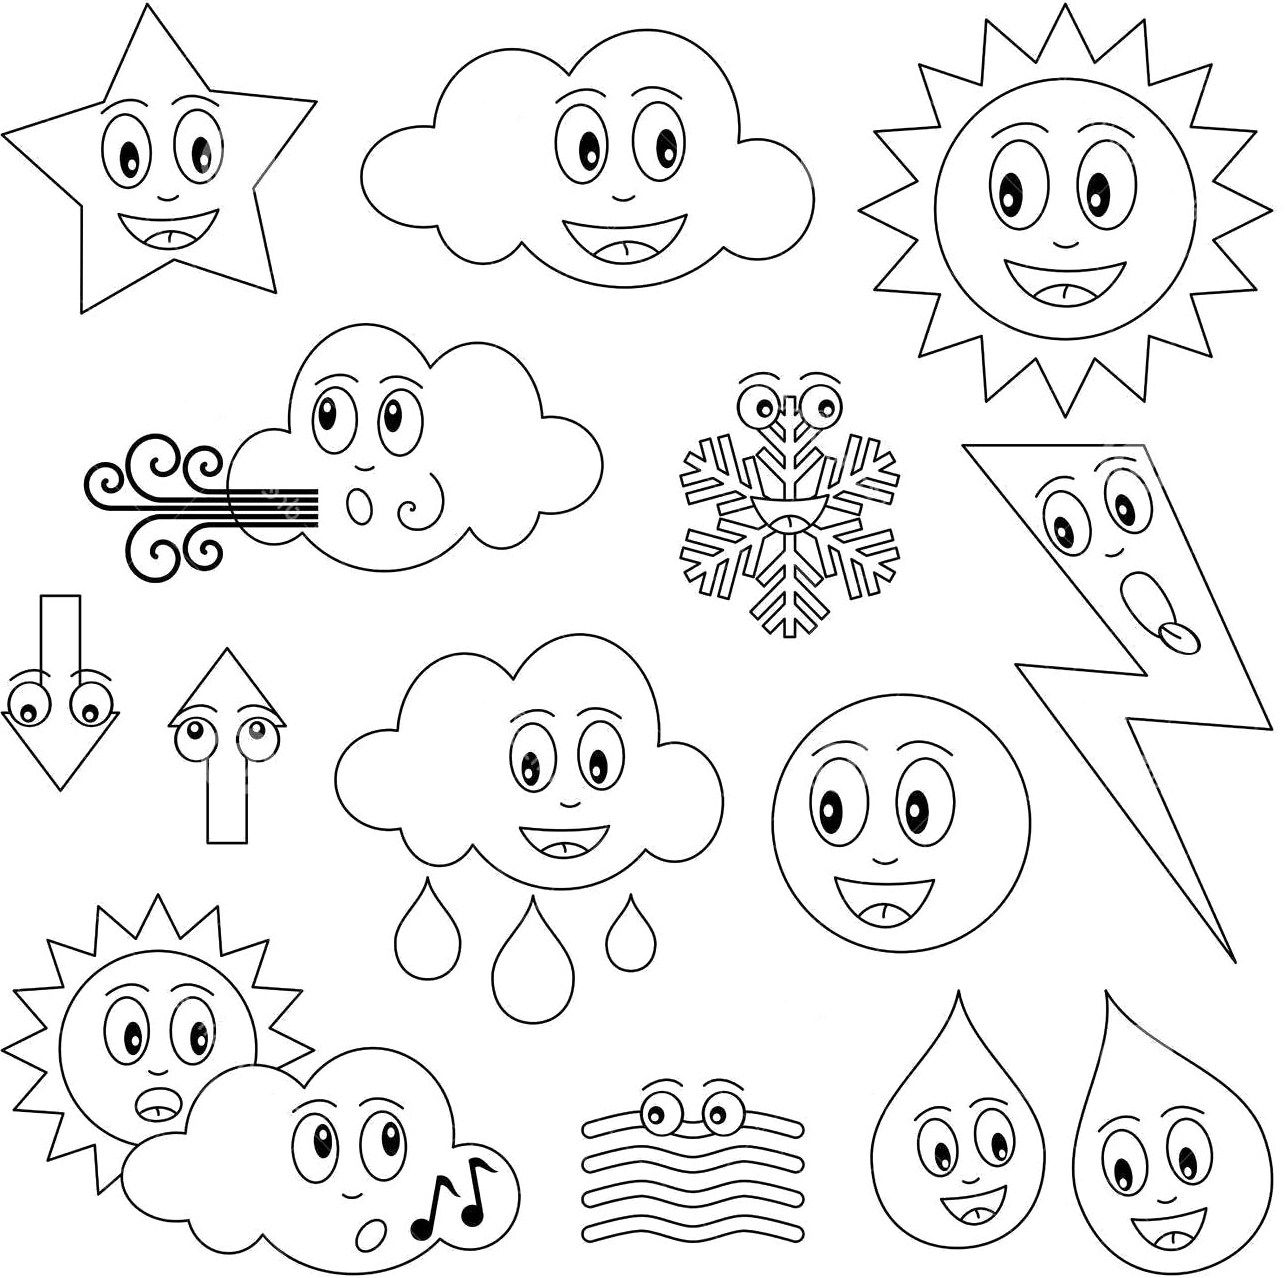 Weather Coloring Pages For Preschool With 0 Coloring Pages Coloring Pages For Kids Coloring Pages For Girls